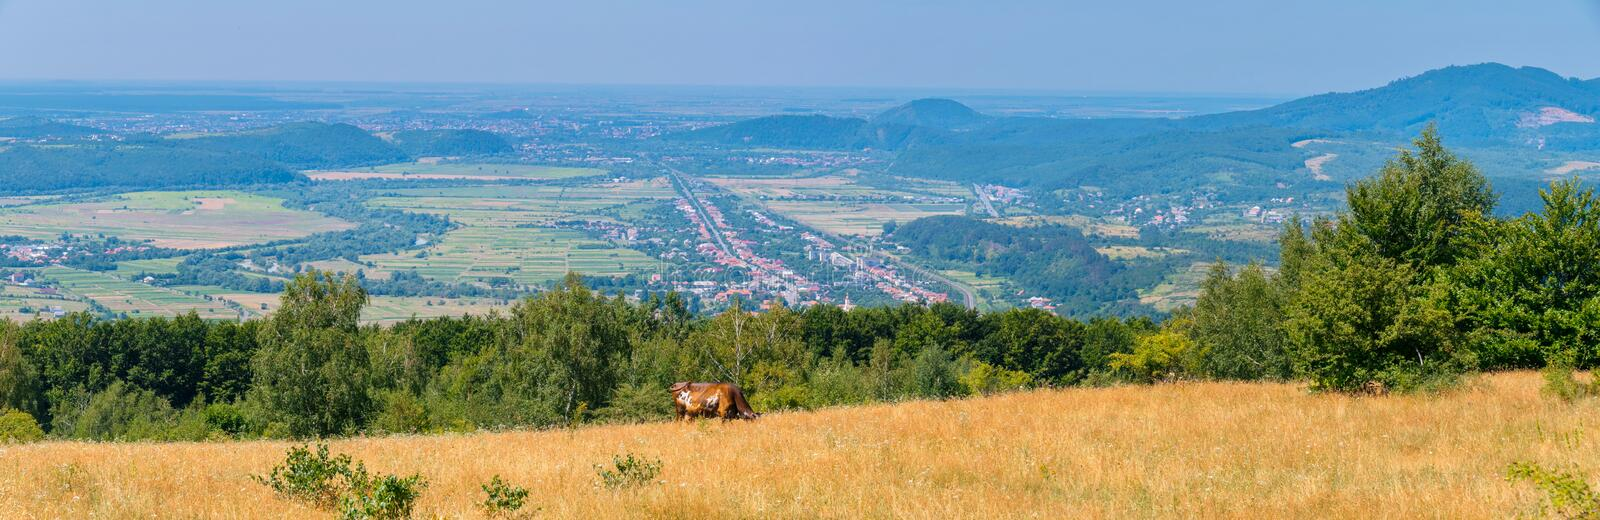 Panorama of pasture with brown cow and distant cities in the valleys between the hills stock photos